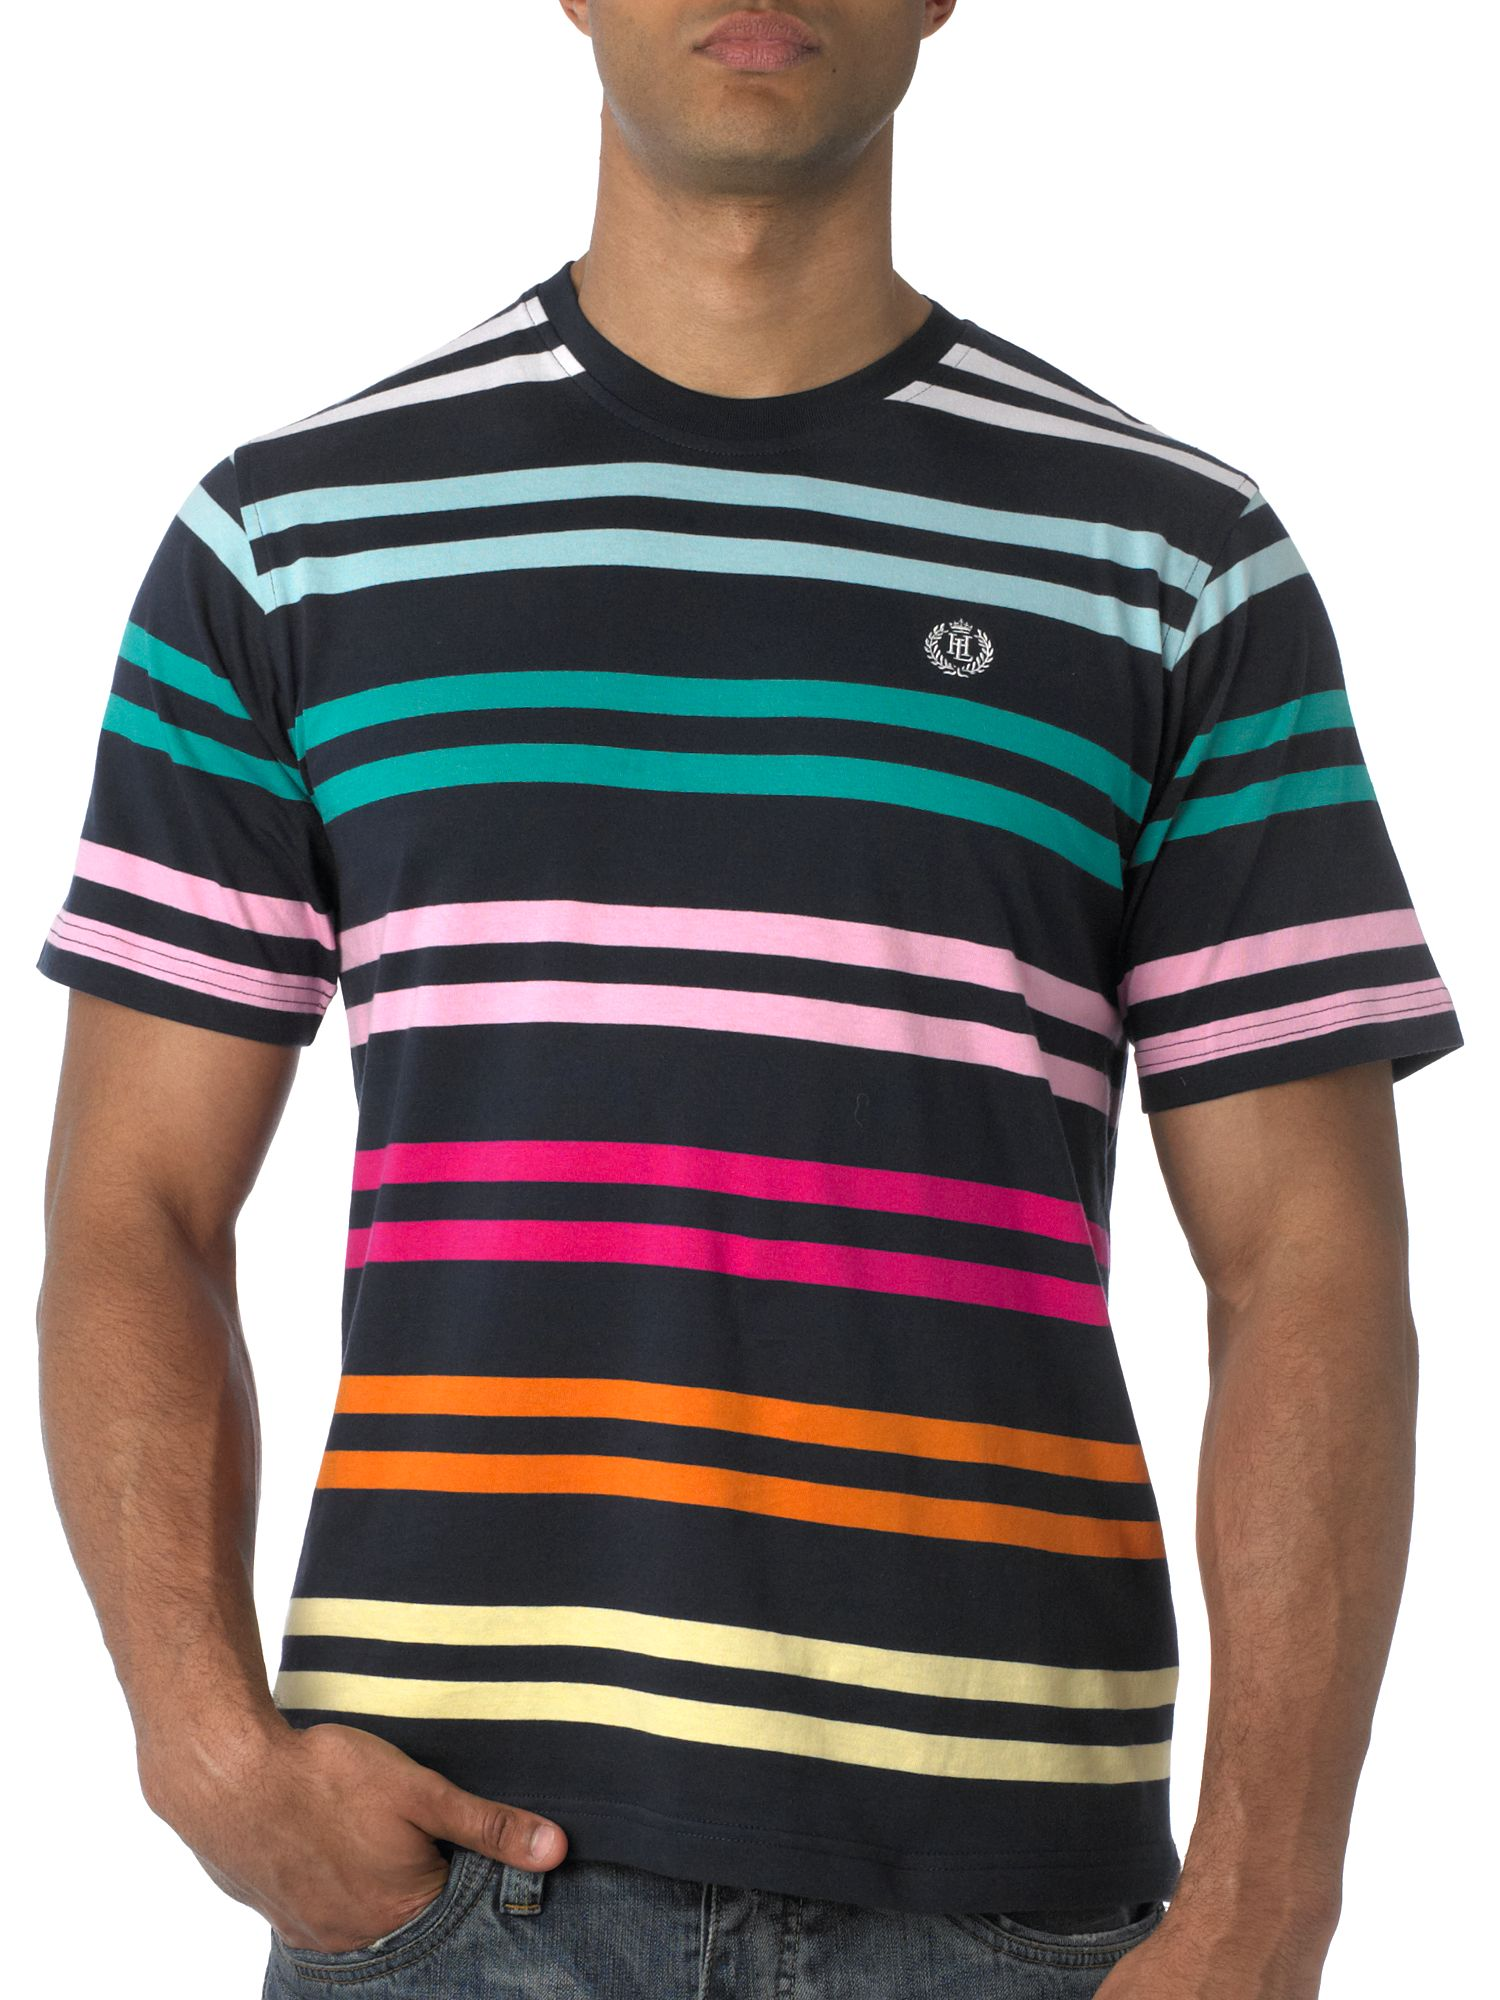 Henri Lloyd Short sleeve multistripe t-shirt Navy product image